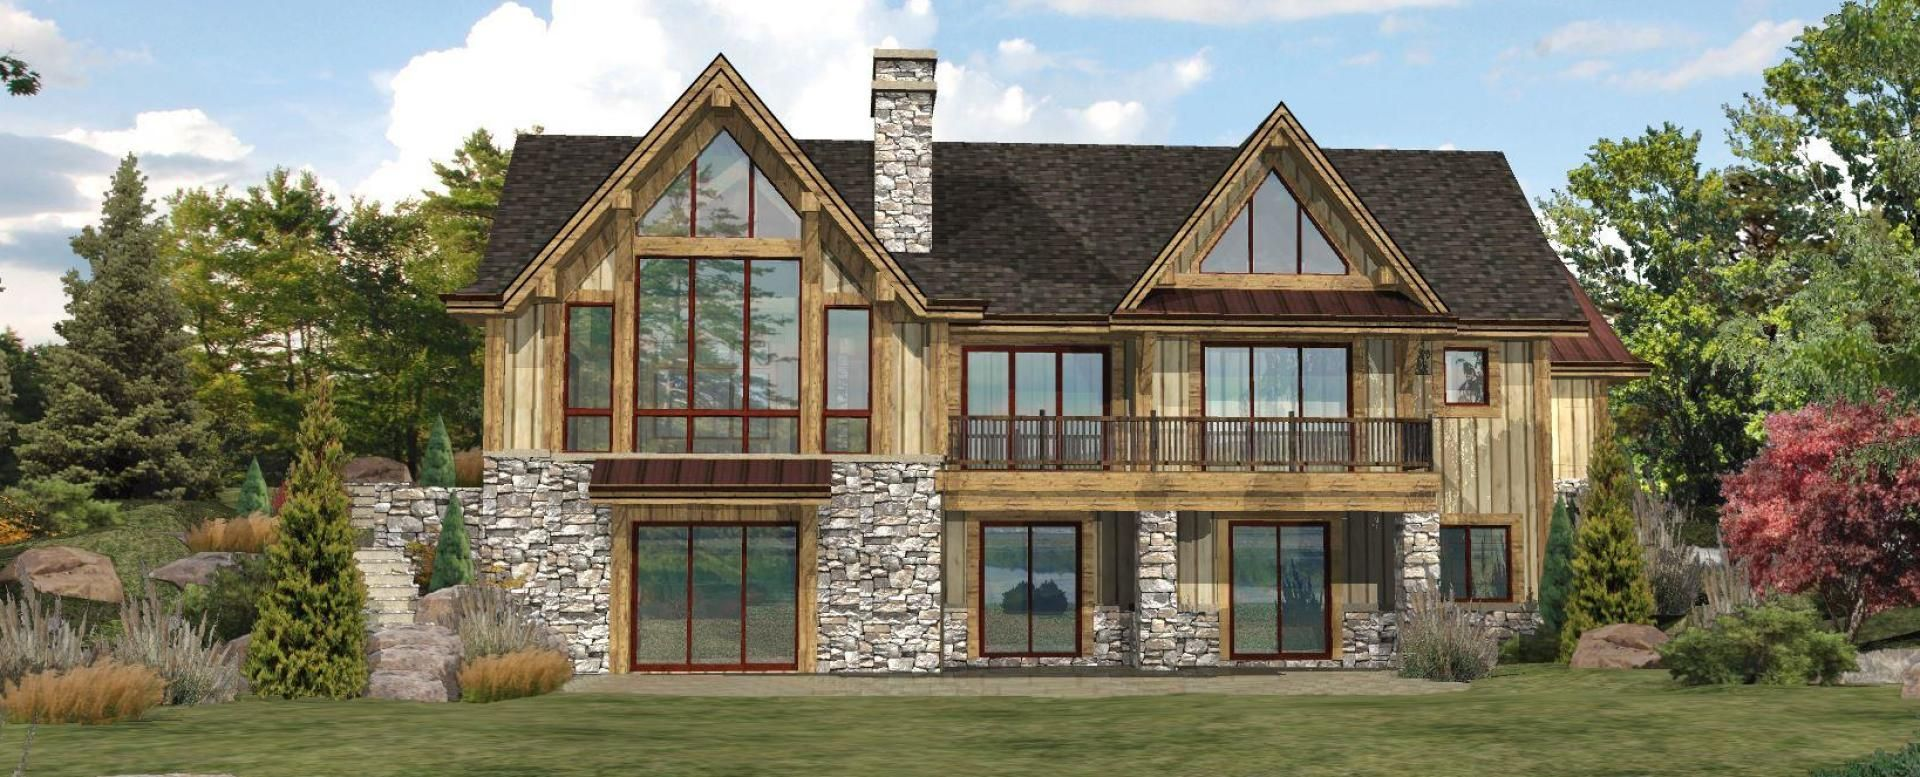 Pin By Mary Bishop Baldwin On Houses Lakefront Homes Lake House Plans Log Home Floor Plans